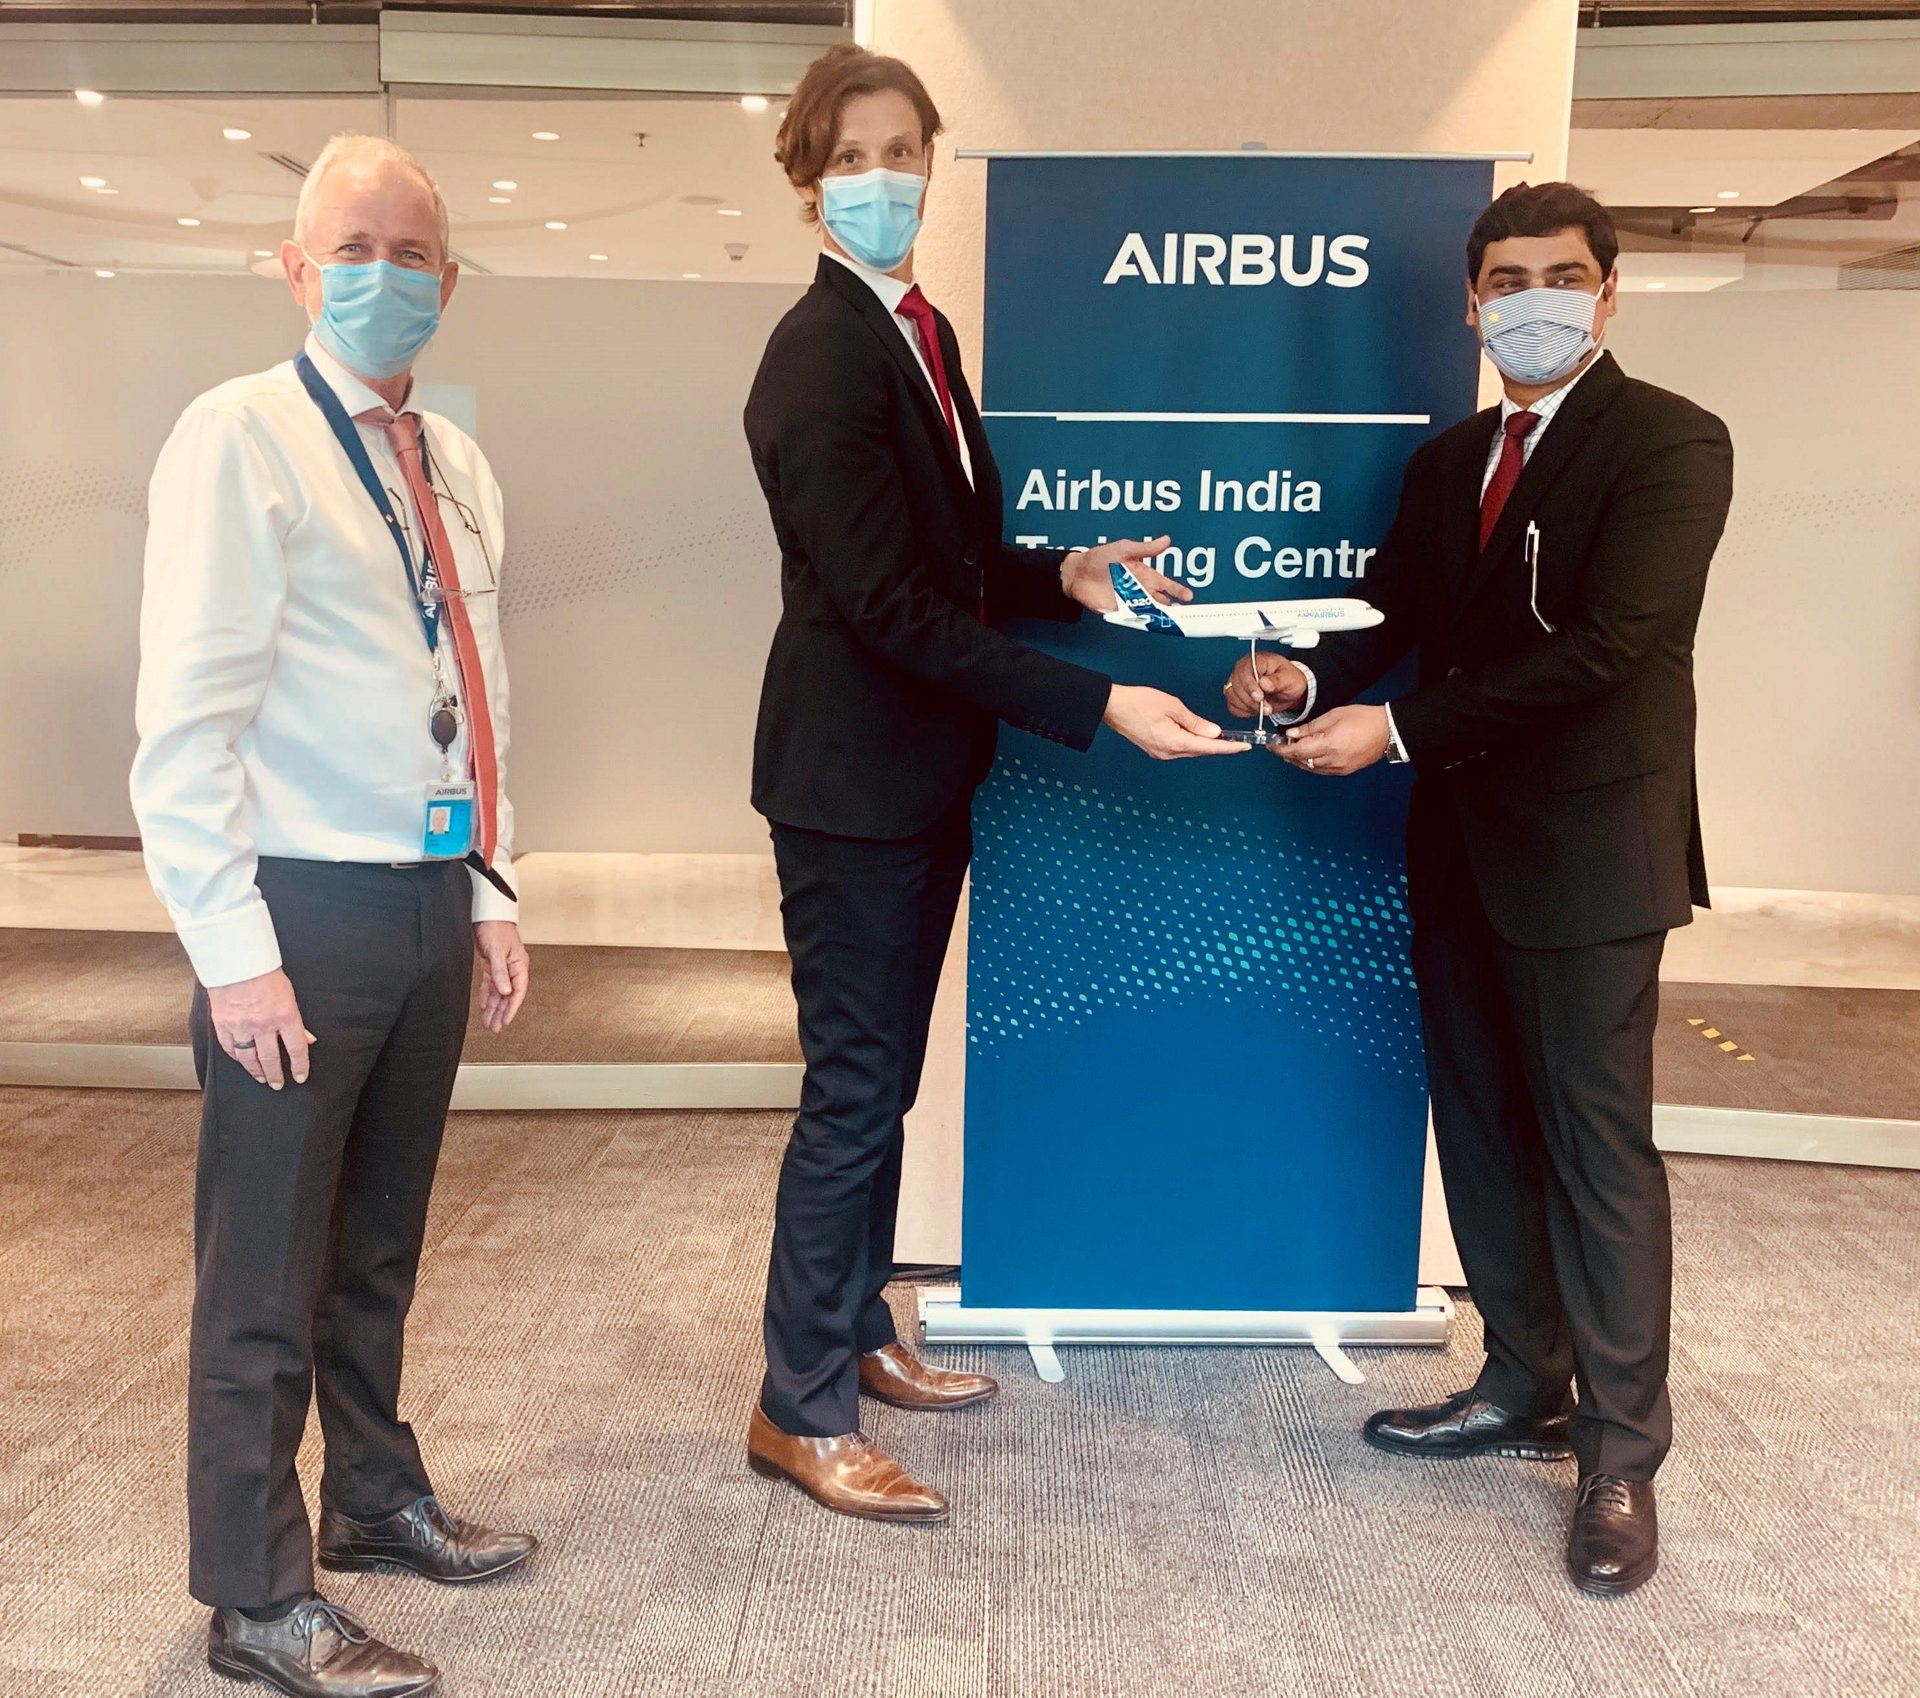 Rémi Maillard, new President and Managing Director, Airbus India and South Asia has just signed an agreement with Rahul Ranjan Singh, Vice President, Indian Institute of Aeronautics Group for Airbus maintenance Competence Training for Academy